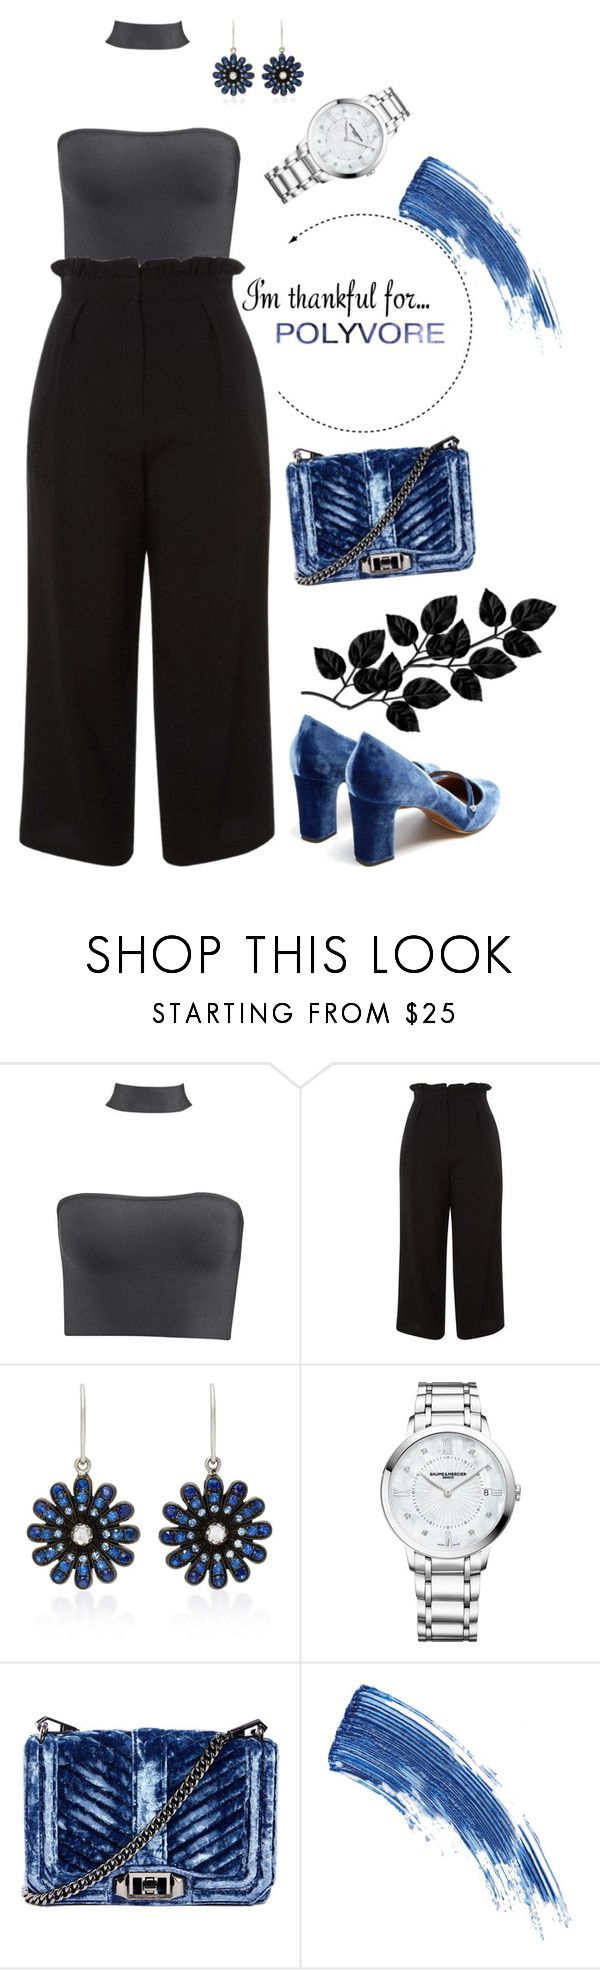 """""""I'm Thankful For..."""" by coffee88 ❤ liked on Polyvore featuring Topshop, Nam Cho, Baume & Mercier, Rebecca Minkoff, Eyeko and Tabitha Simmons"""